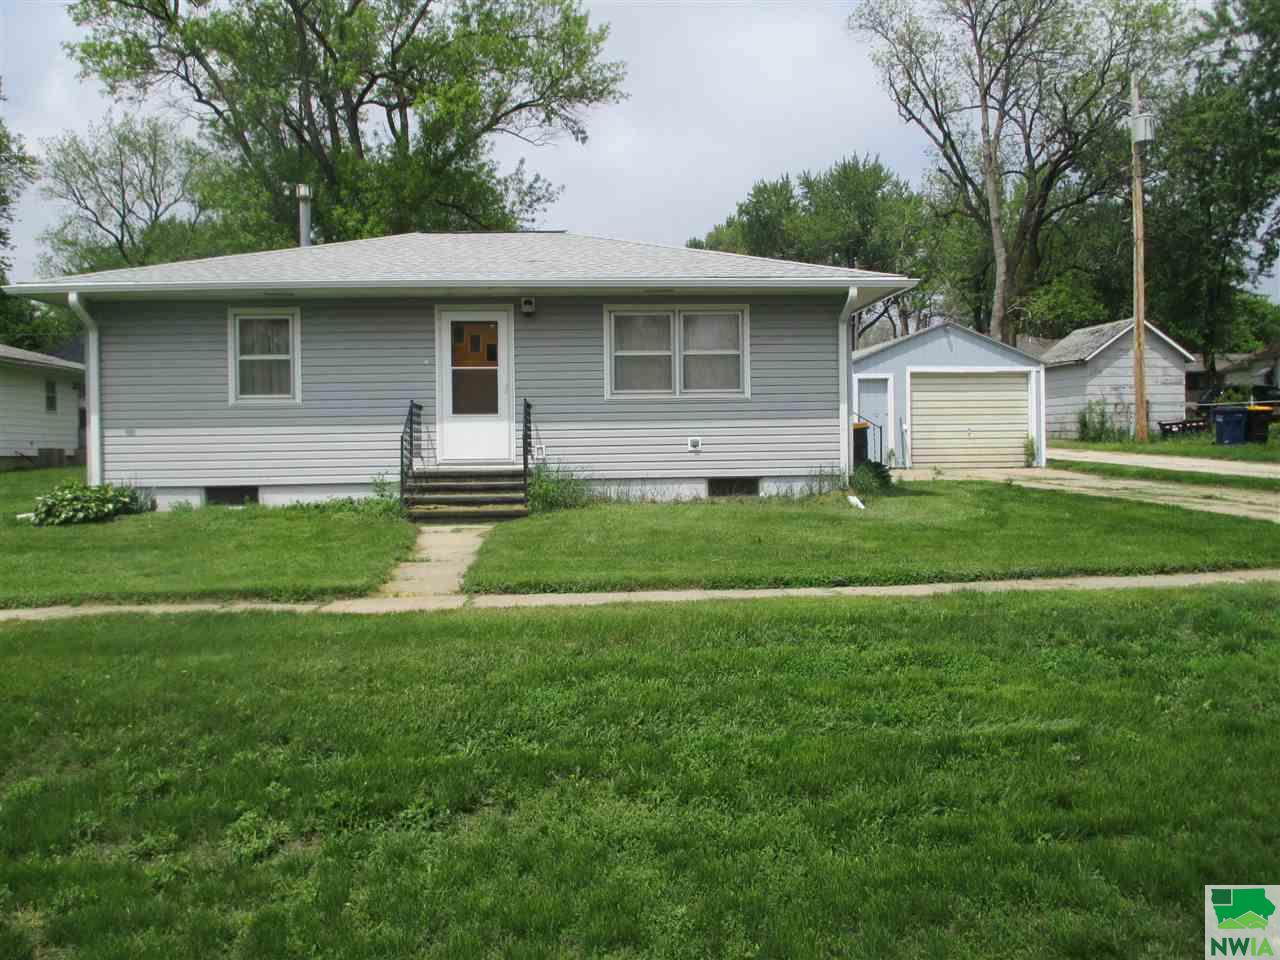 Property for sale at 211 W Third St., Kingsley,  IA 51028